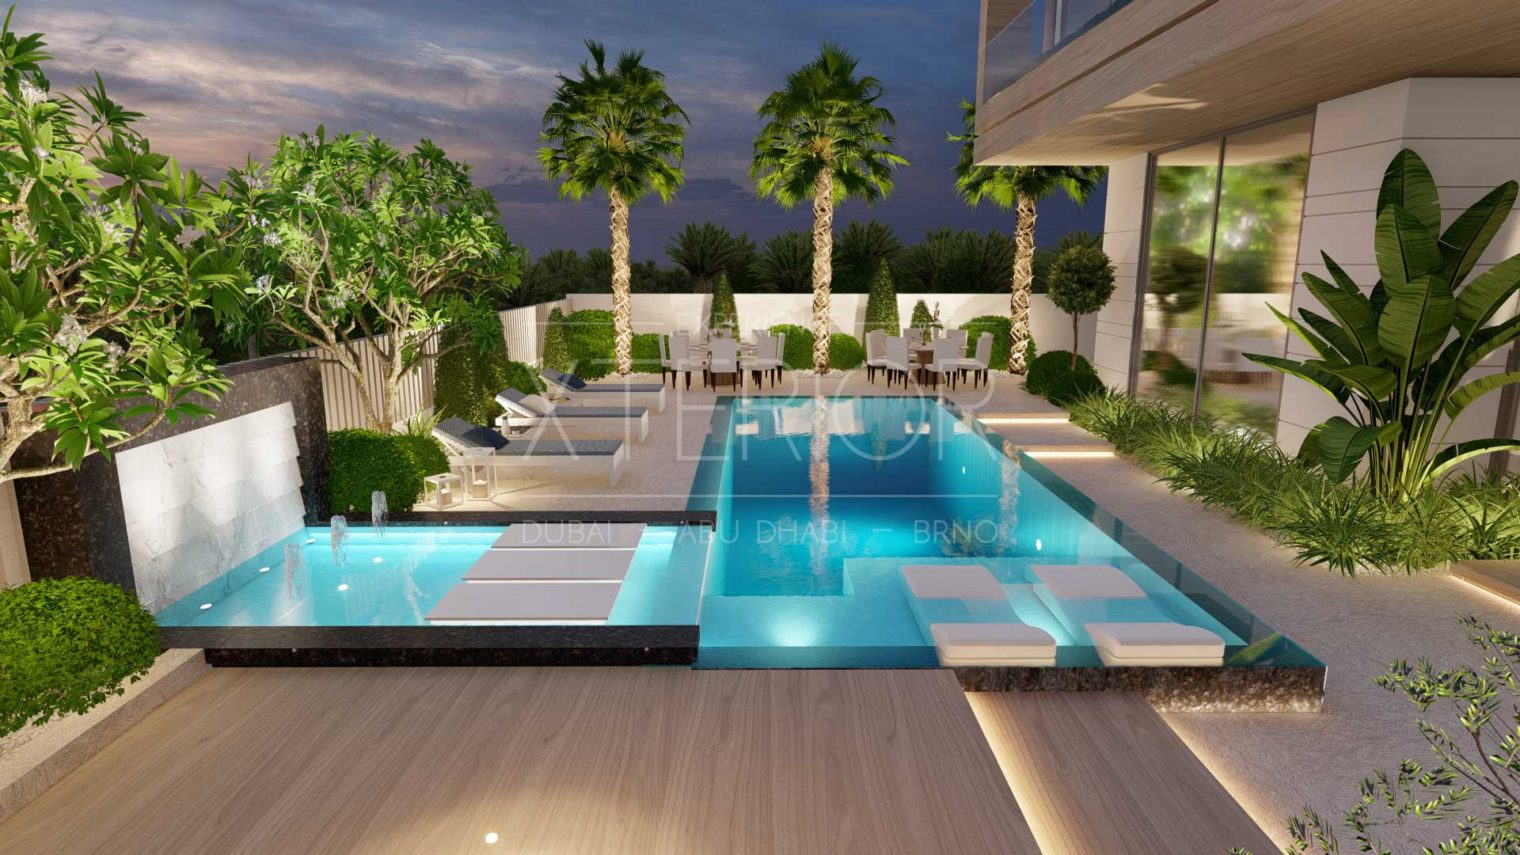 Pool water feature design and build company